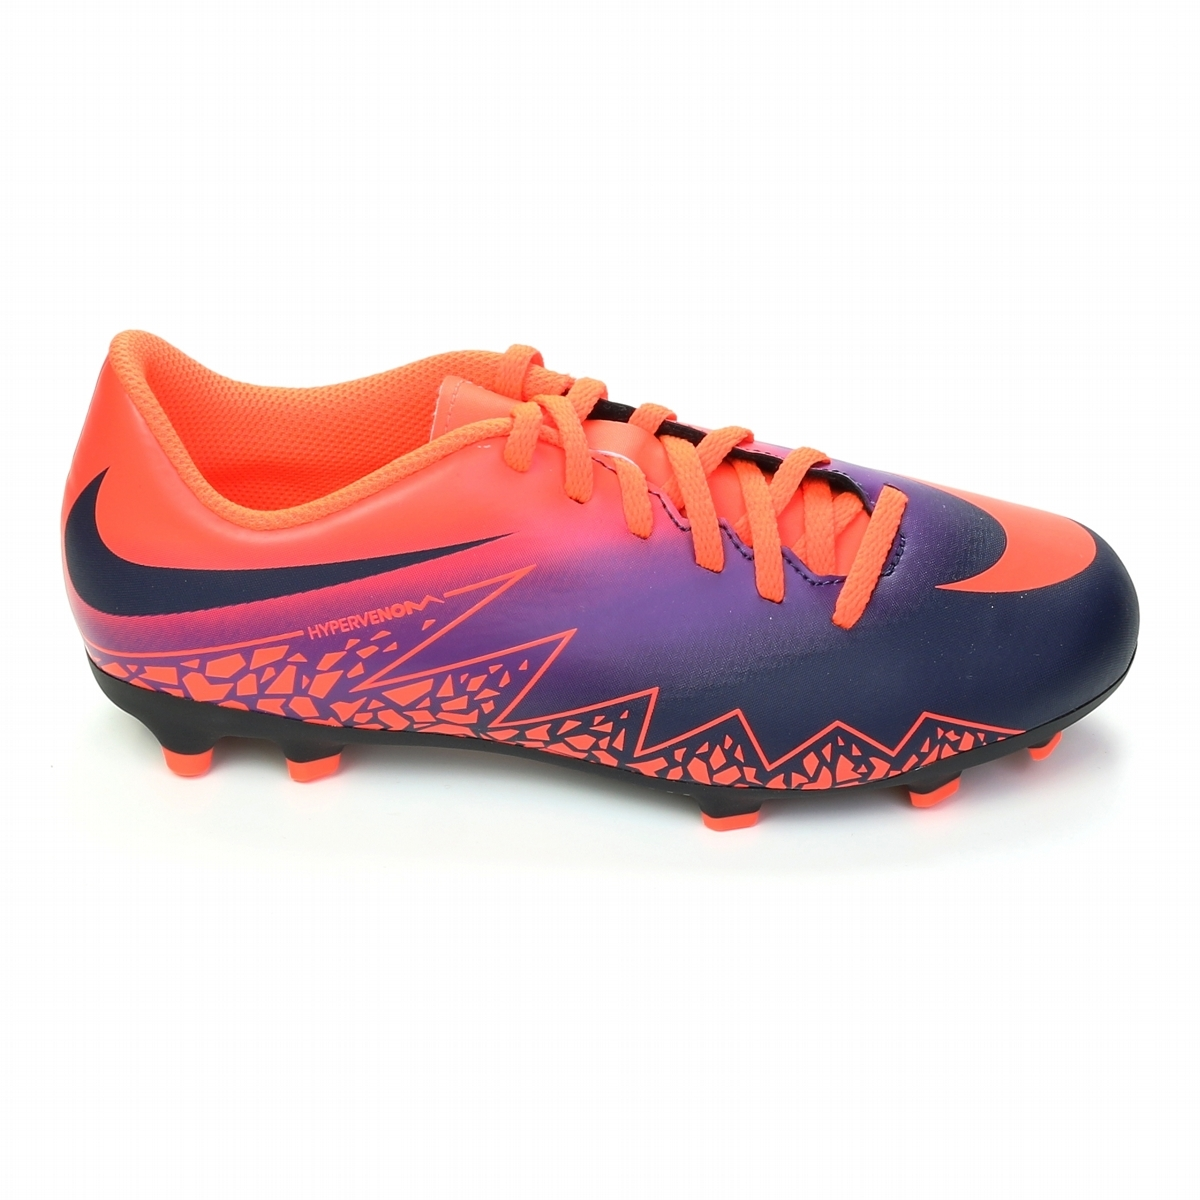 1867a24fab32 Nike Hypervenom Phade II Youth Soccer Cleats (Total Crimson Obsidian Vivid  Purple)